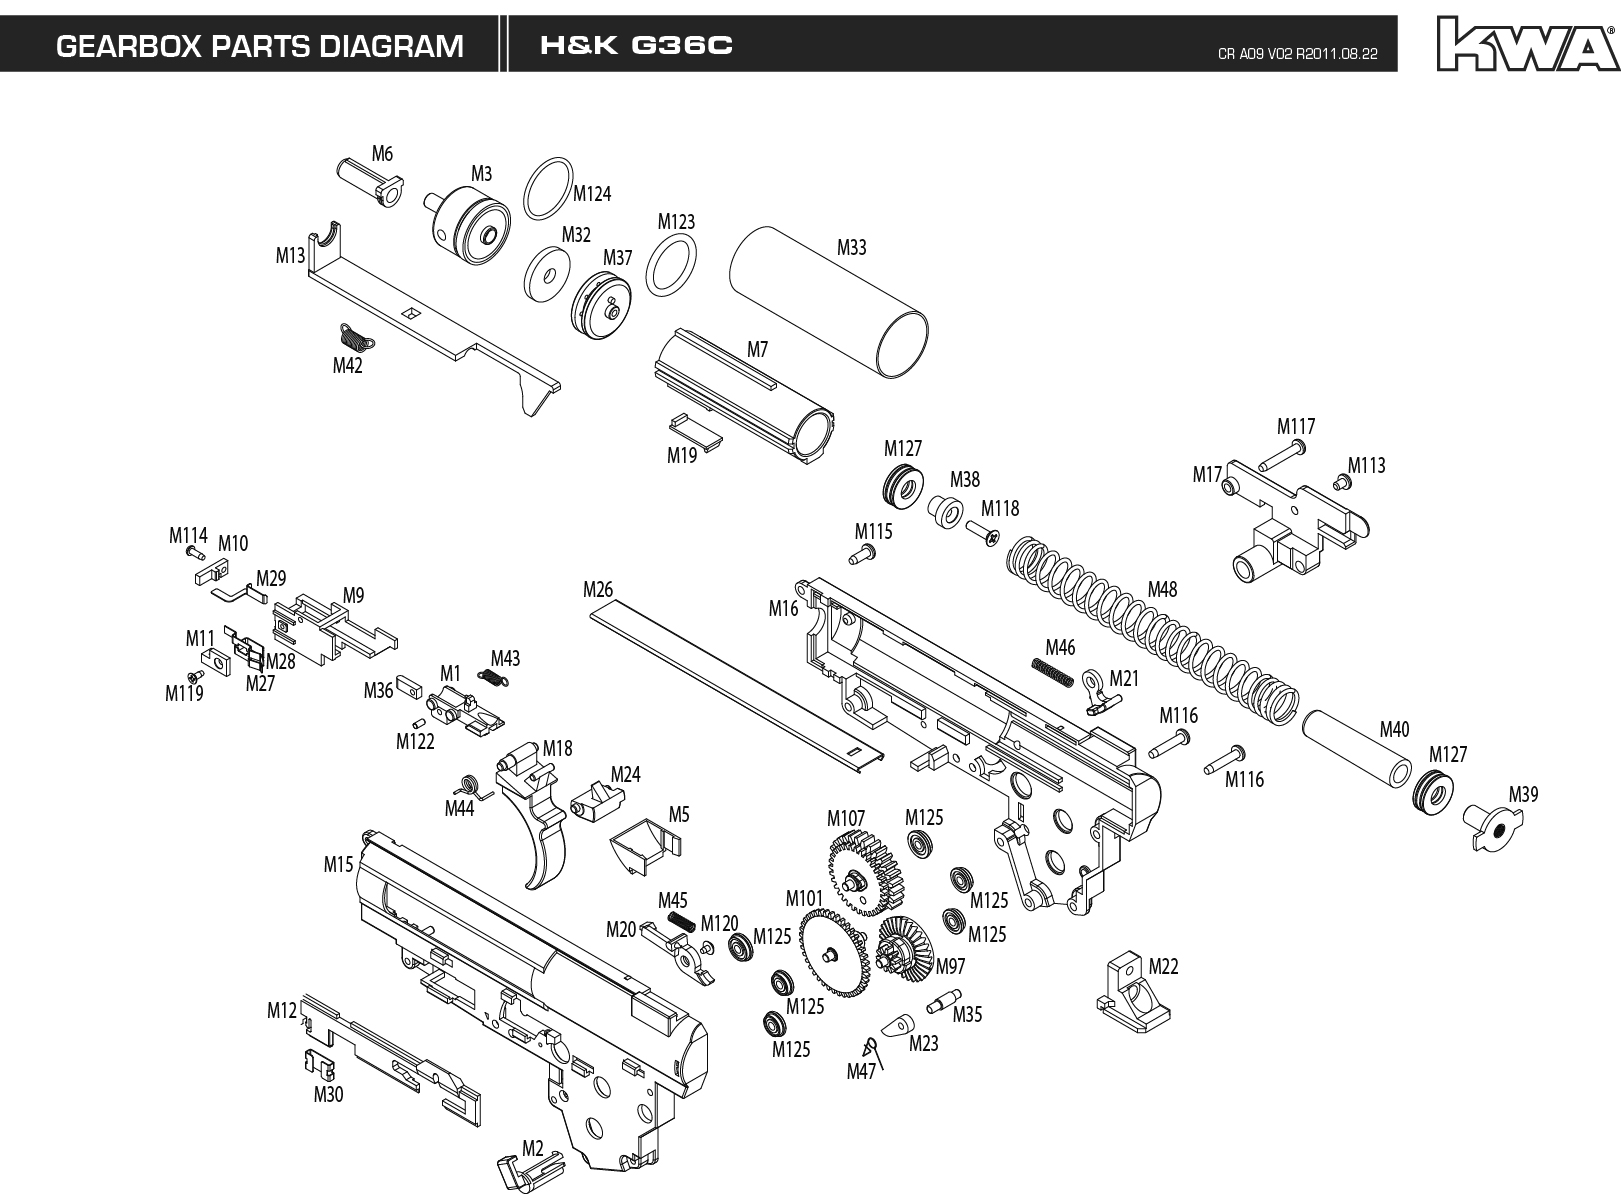 sig sauer 1911 parts diagram convert image to visio heckler and koch g36 weapon gun military rifle poster g